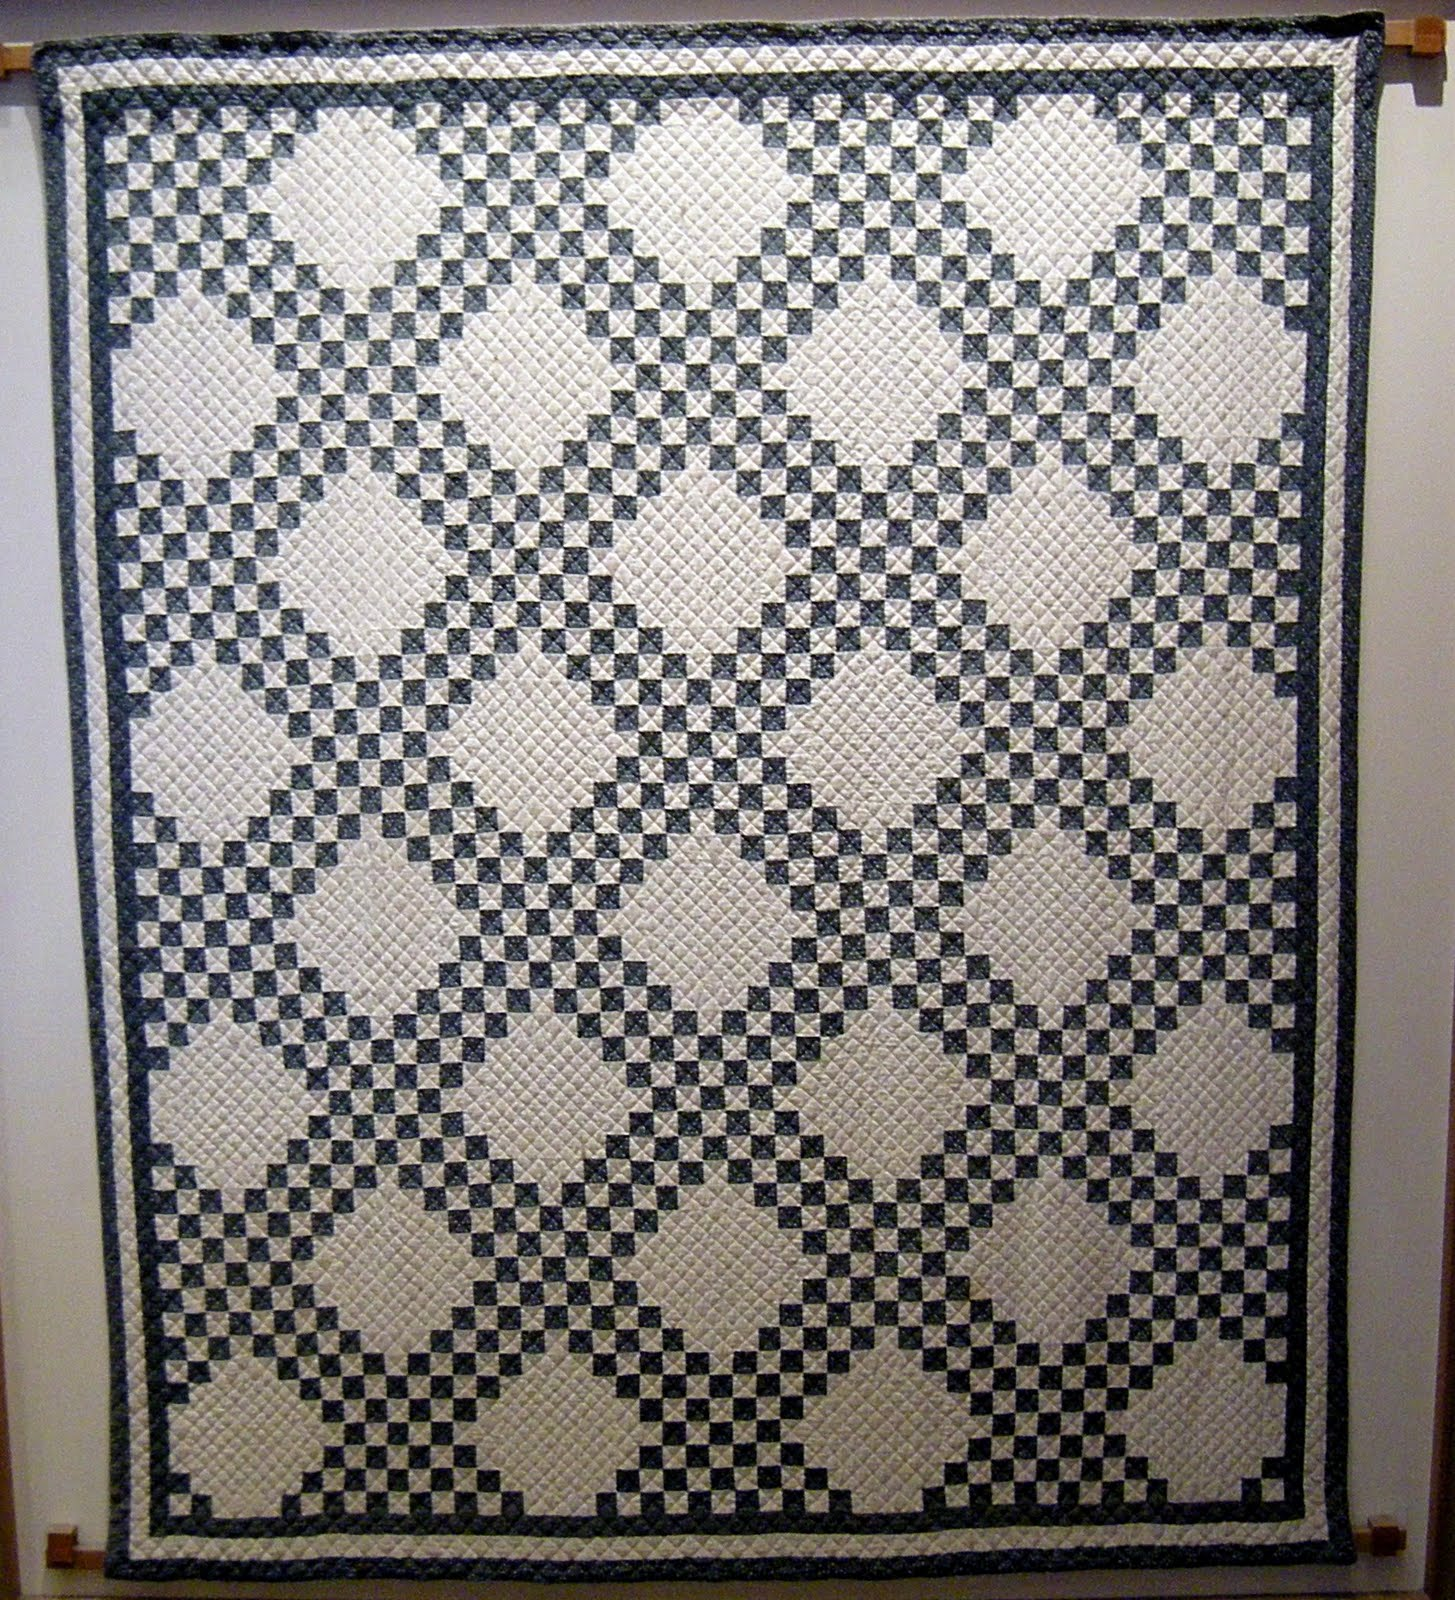 The Mathematical Tourist: Block Patterns in Blue and White